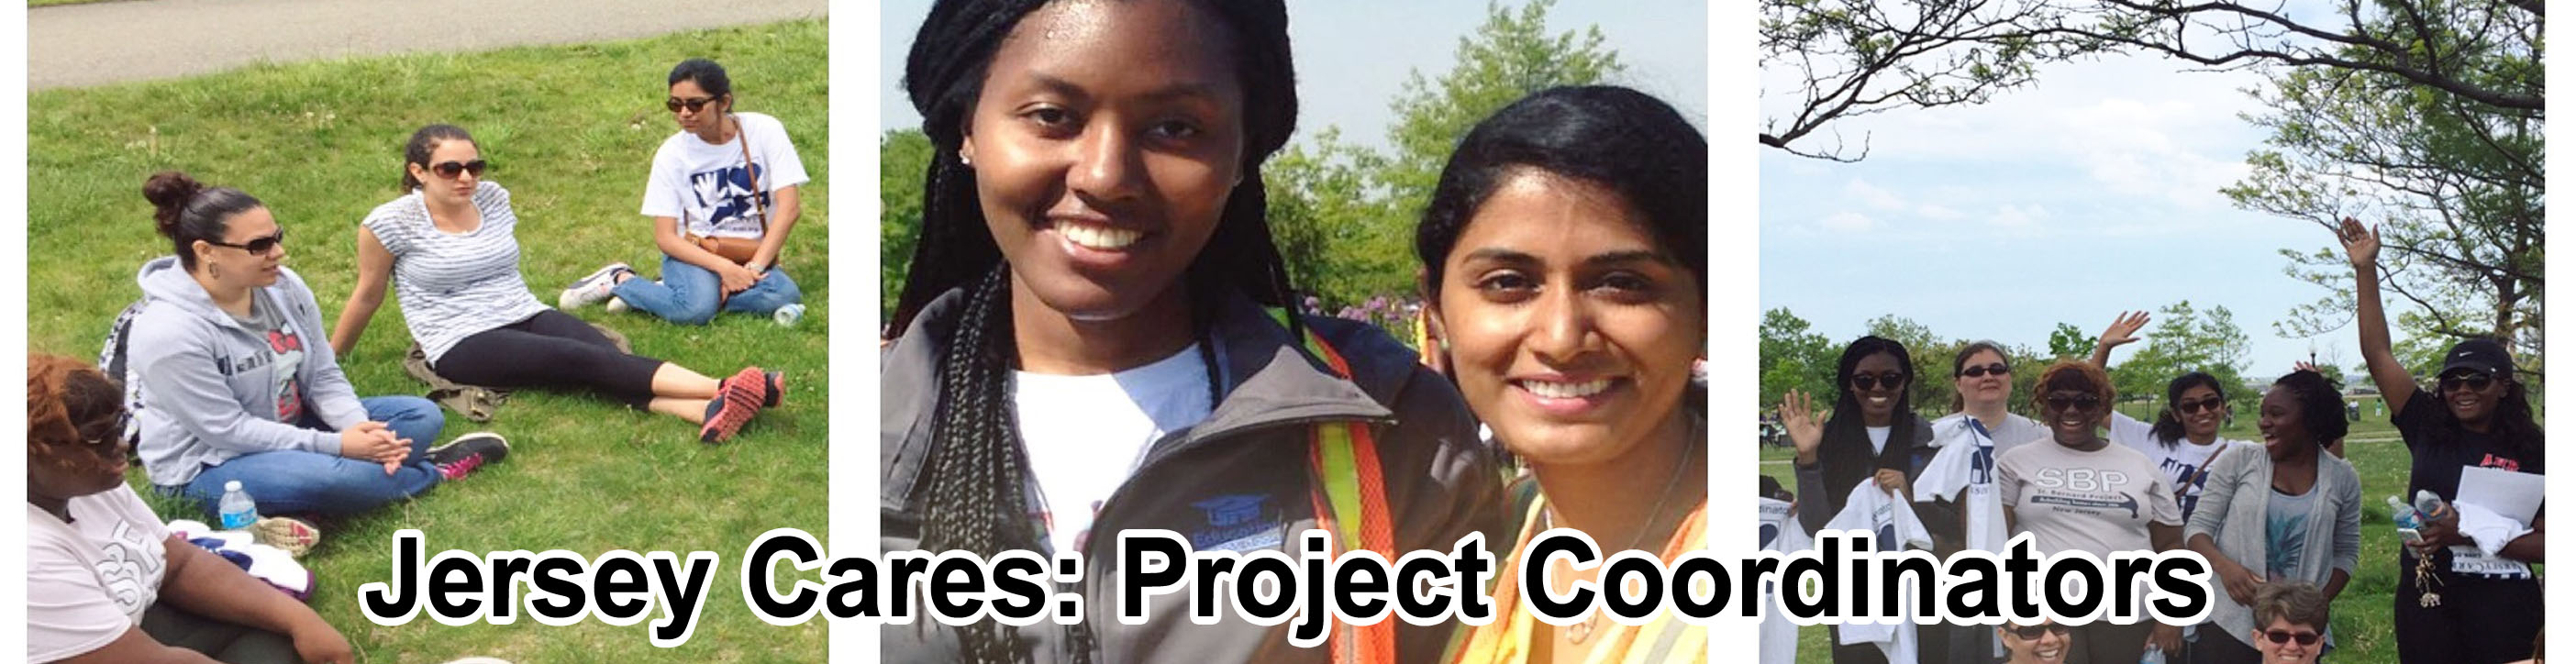 Love Volunteering? Become a Project Coordinator and lead a Jersey Cares Project. Projects run throughout New Jersey